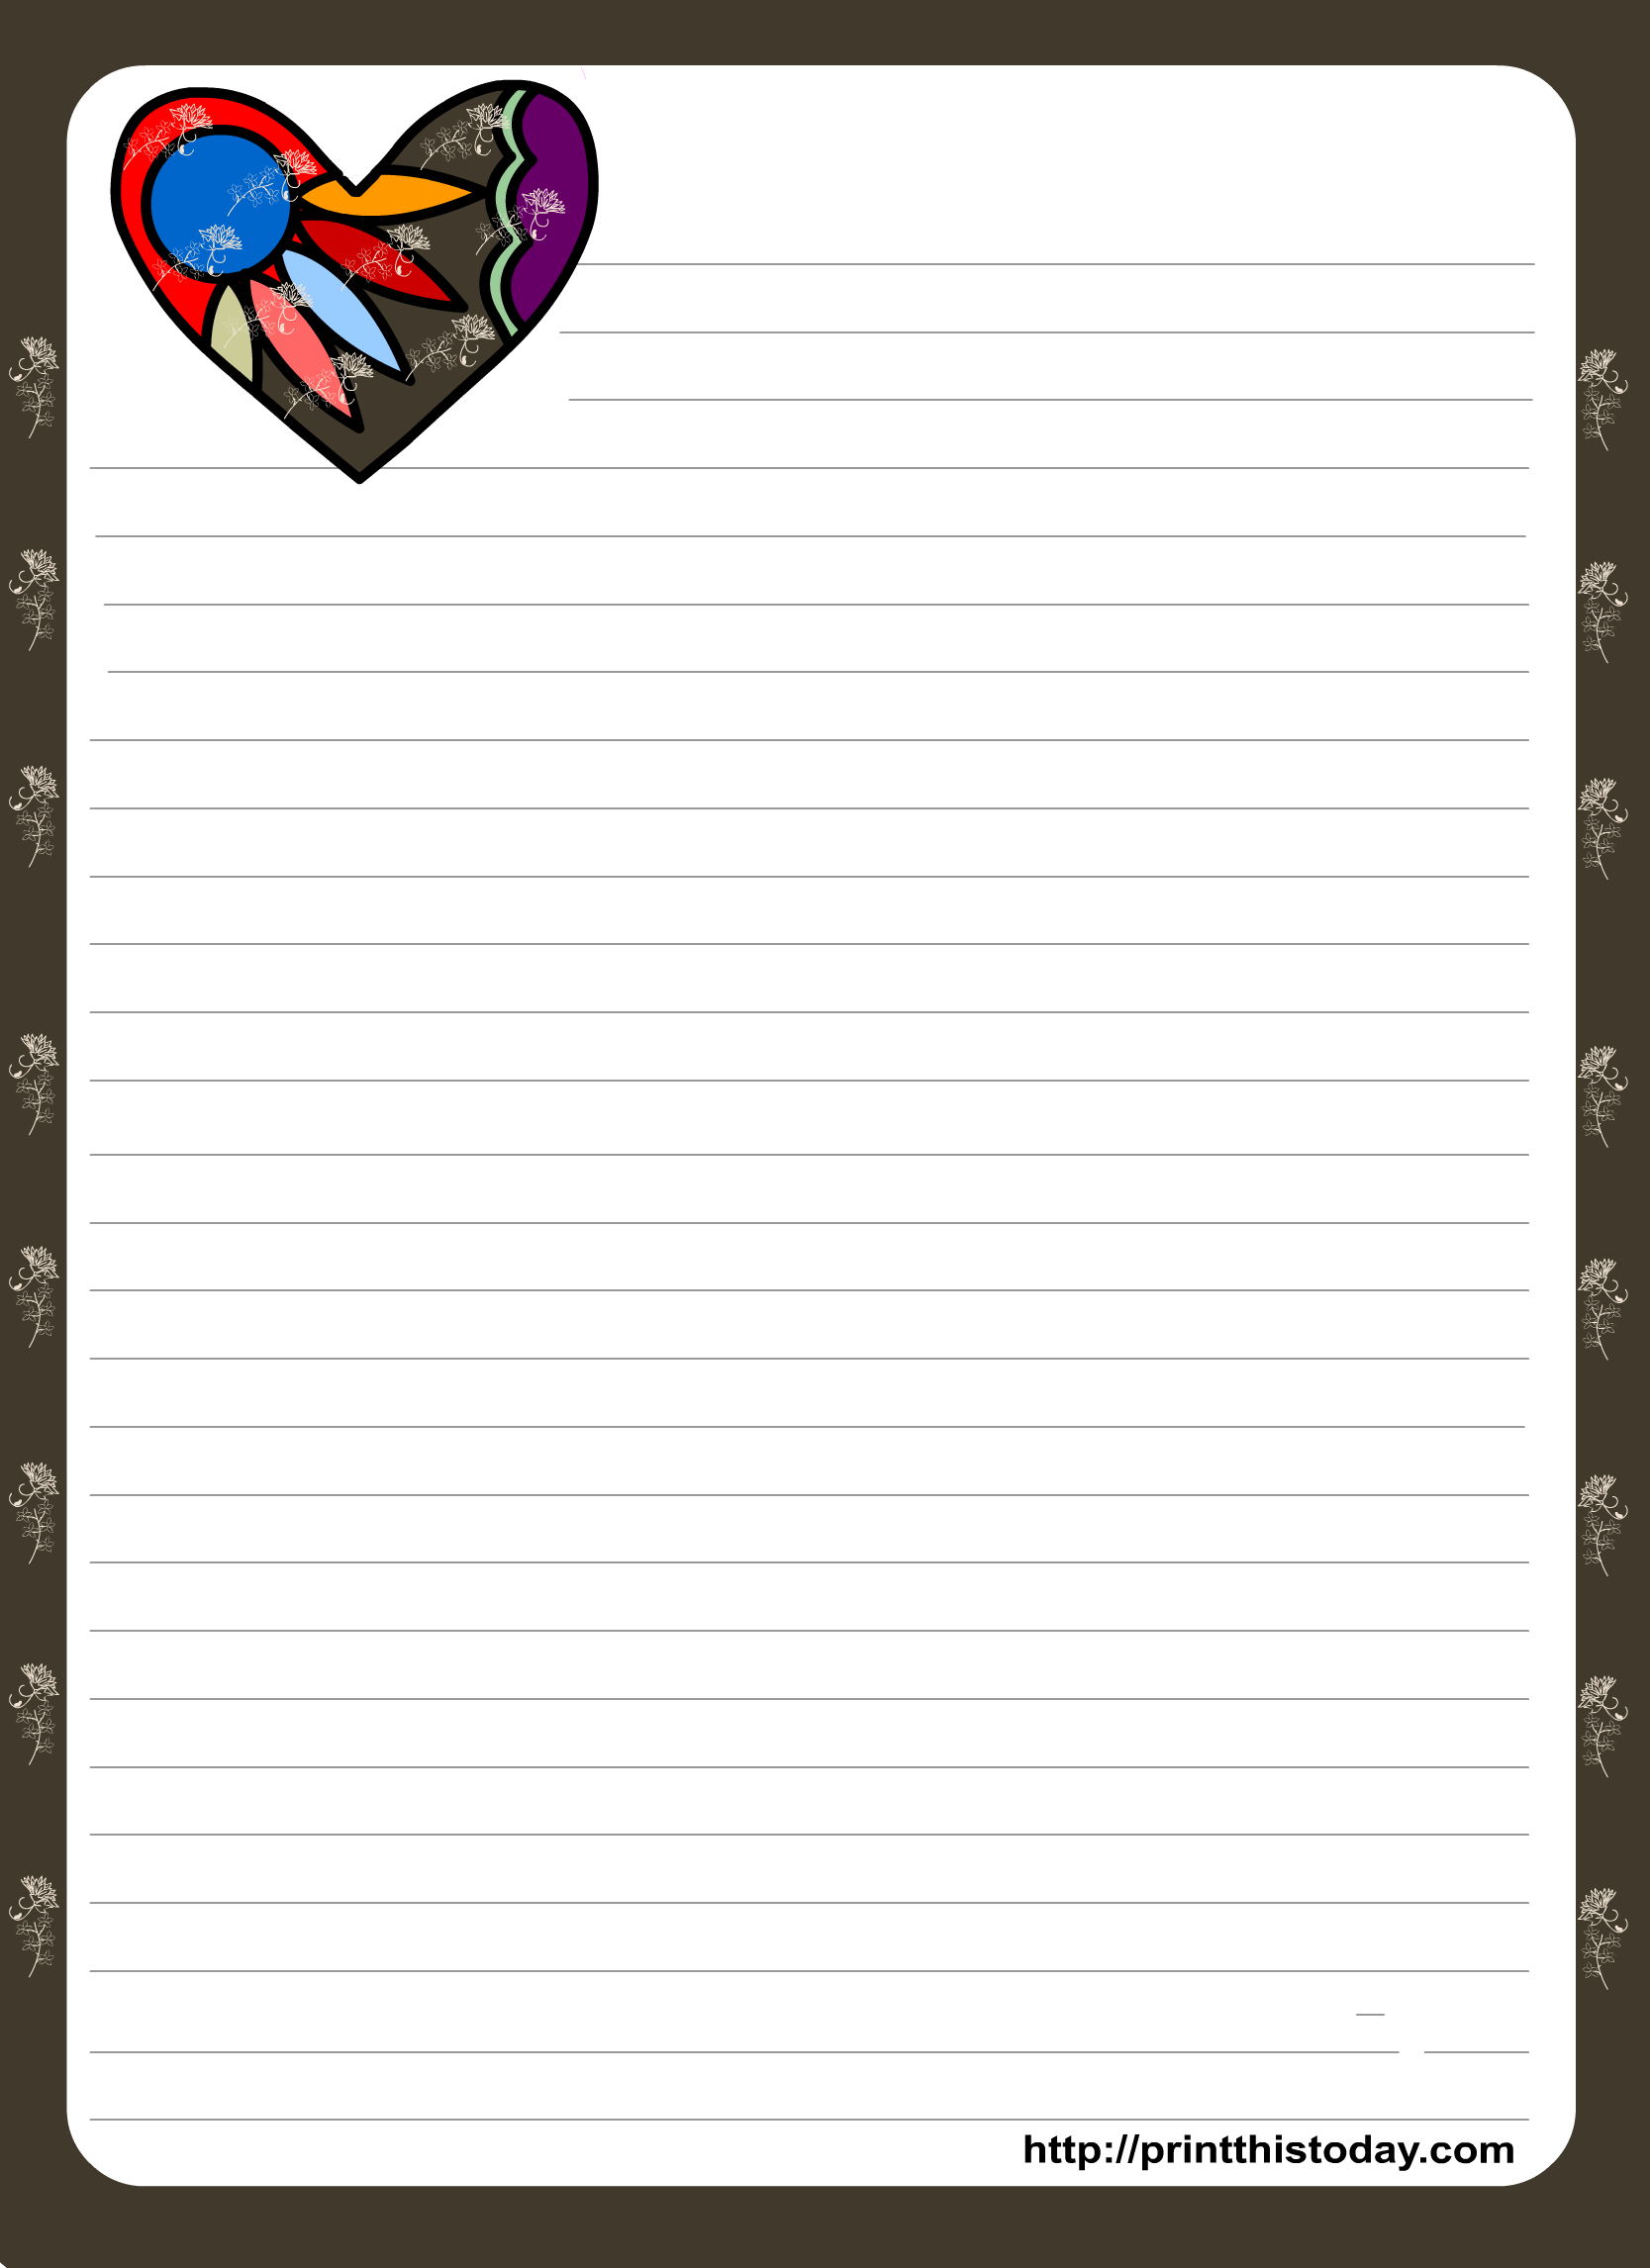 Love Letter Pad Stationery With Colorful Heart | Organization - Free Printable Lined Stationery